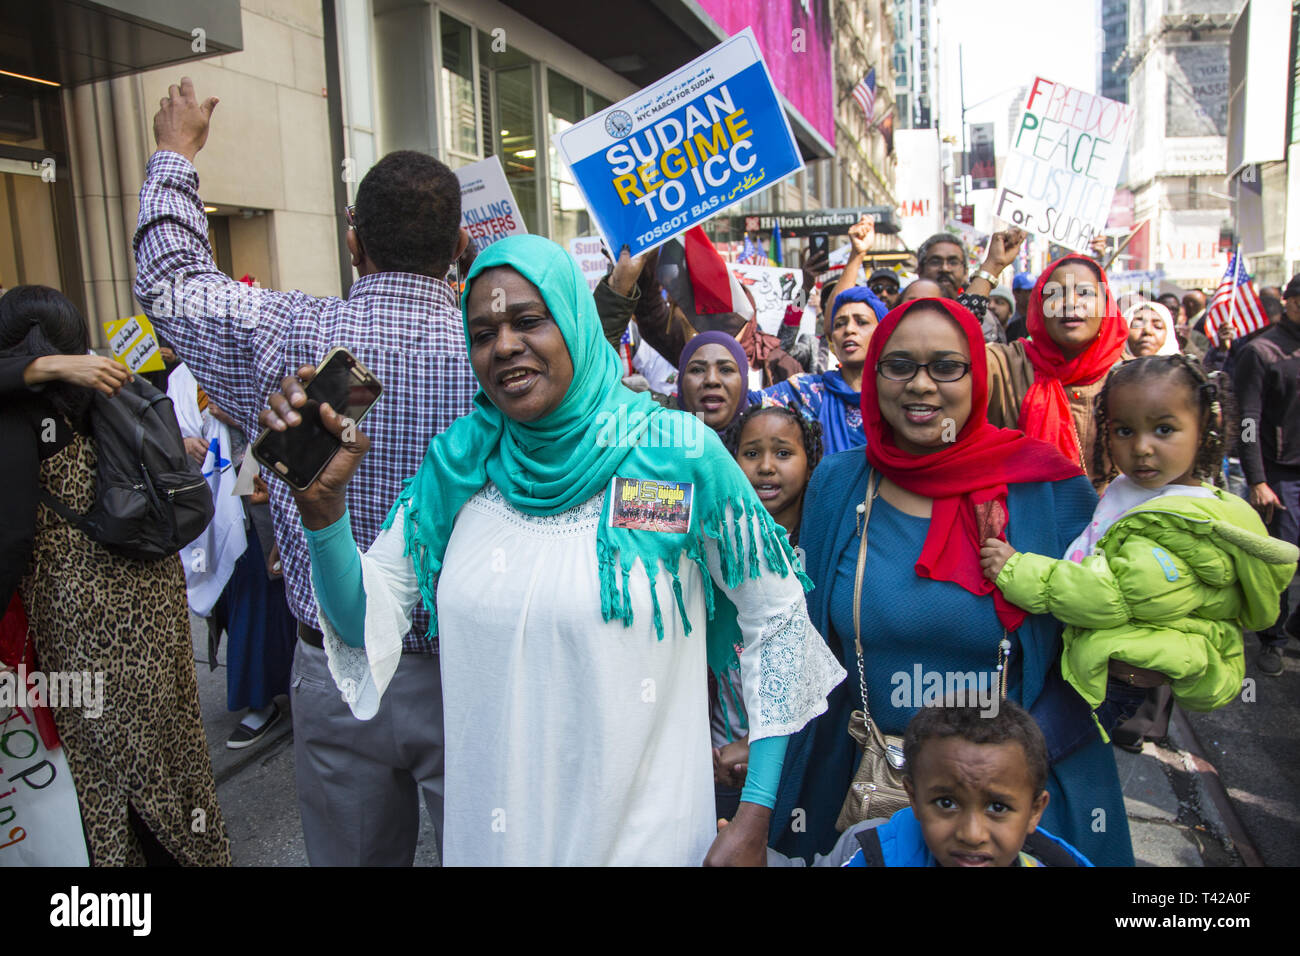 4/6/19: Days before Sudan's dictatorial president Omar al-Bashir was forced from office by a military coup, Sudanese Americans and immigrants demonstrate and march to the UN in NY City to have Bashir resign immediately from office and have democracy restored i9n Sudan. - Stock Image